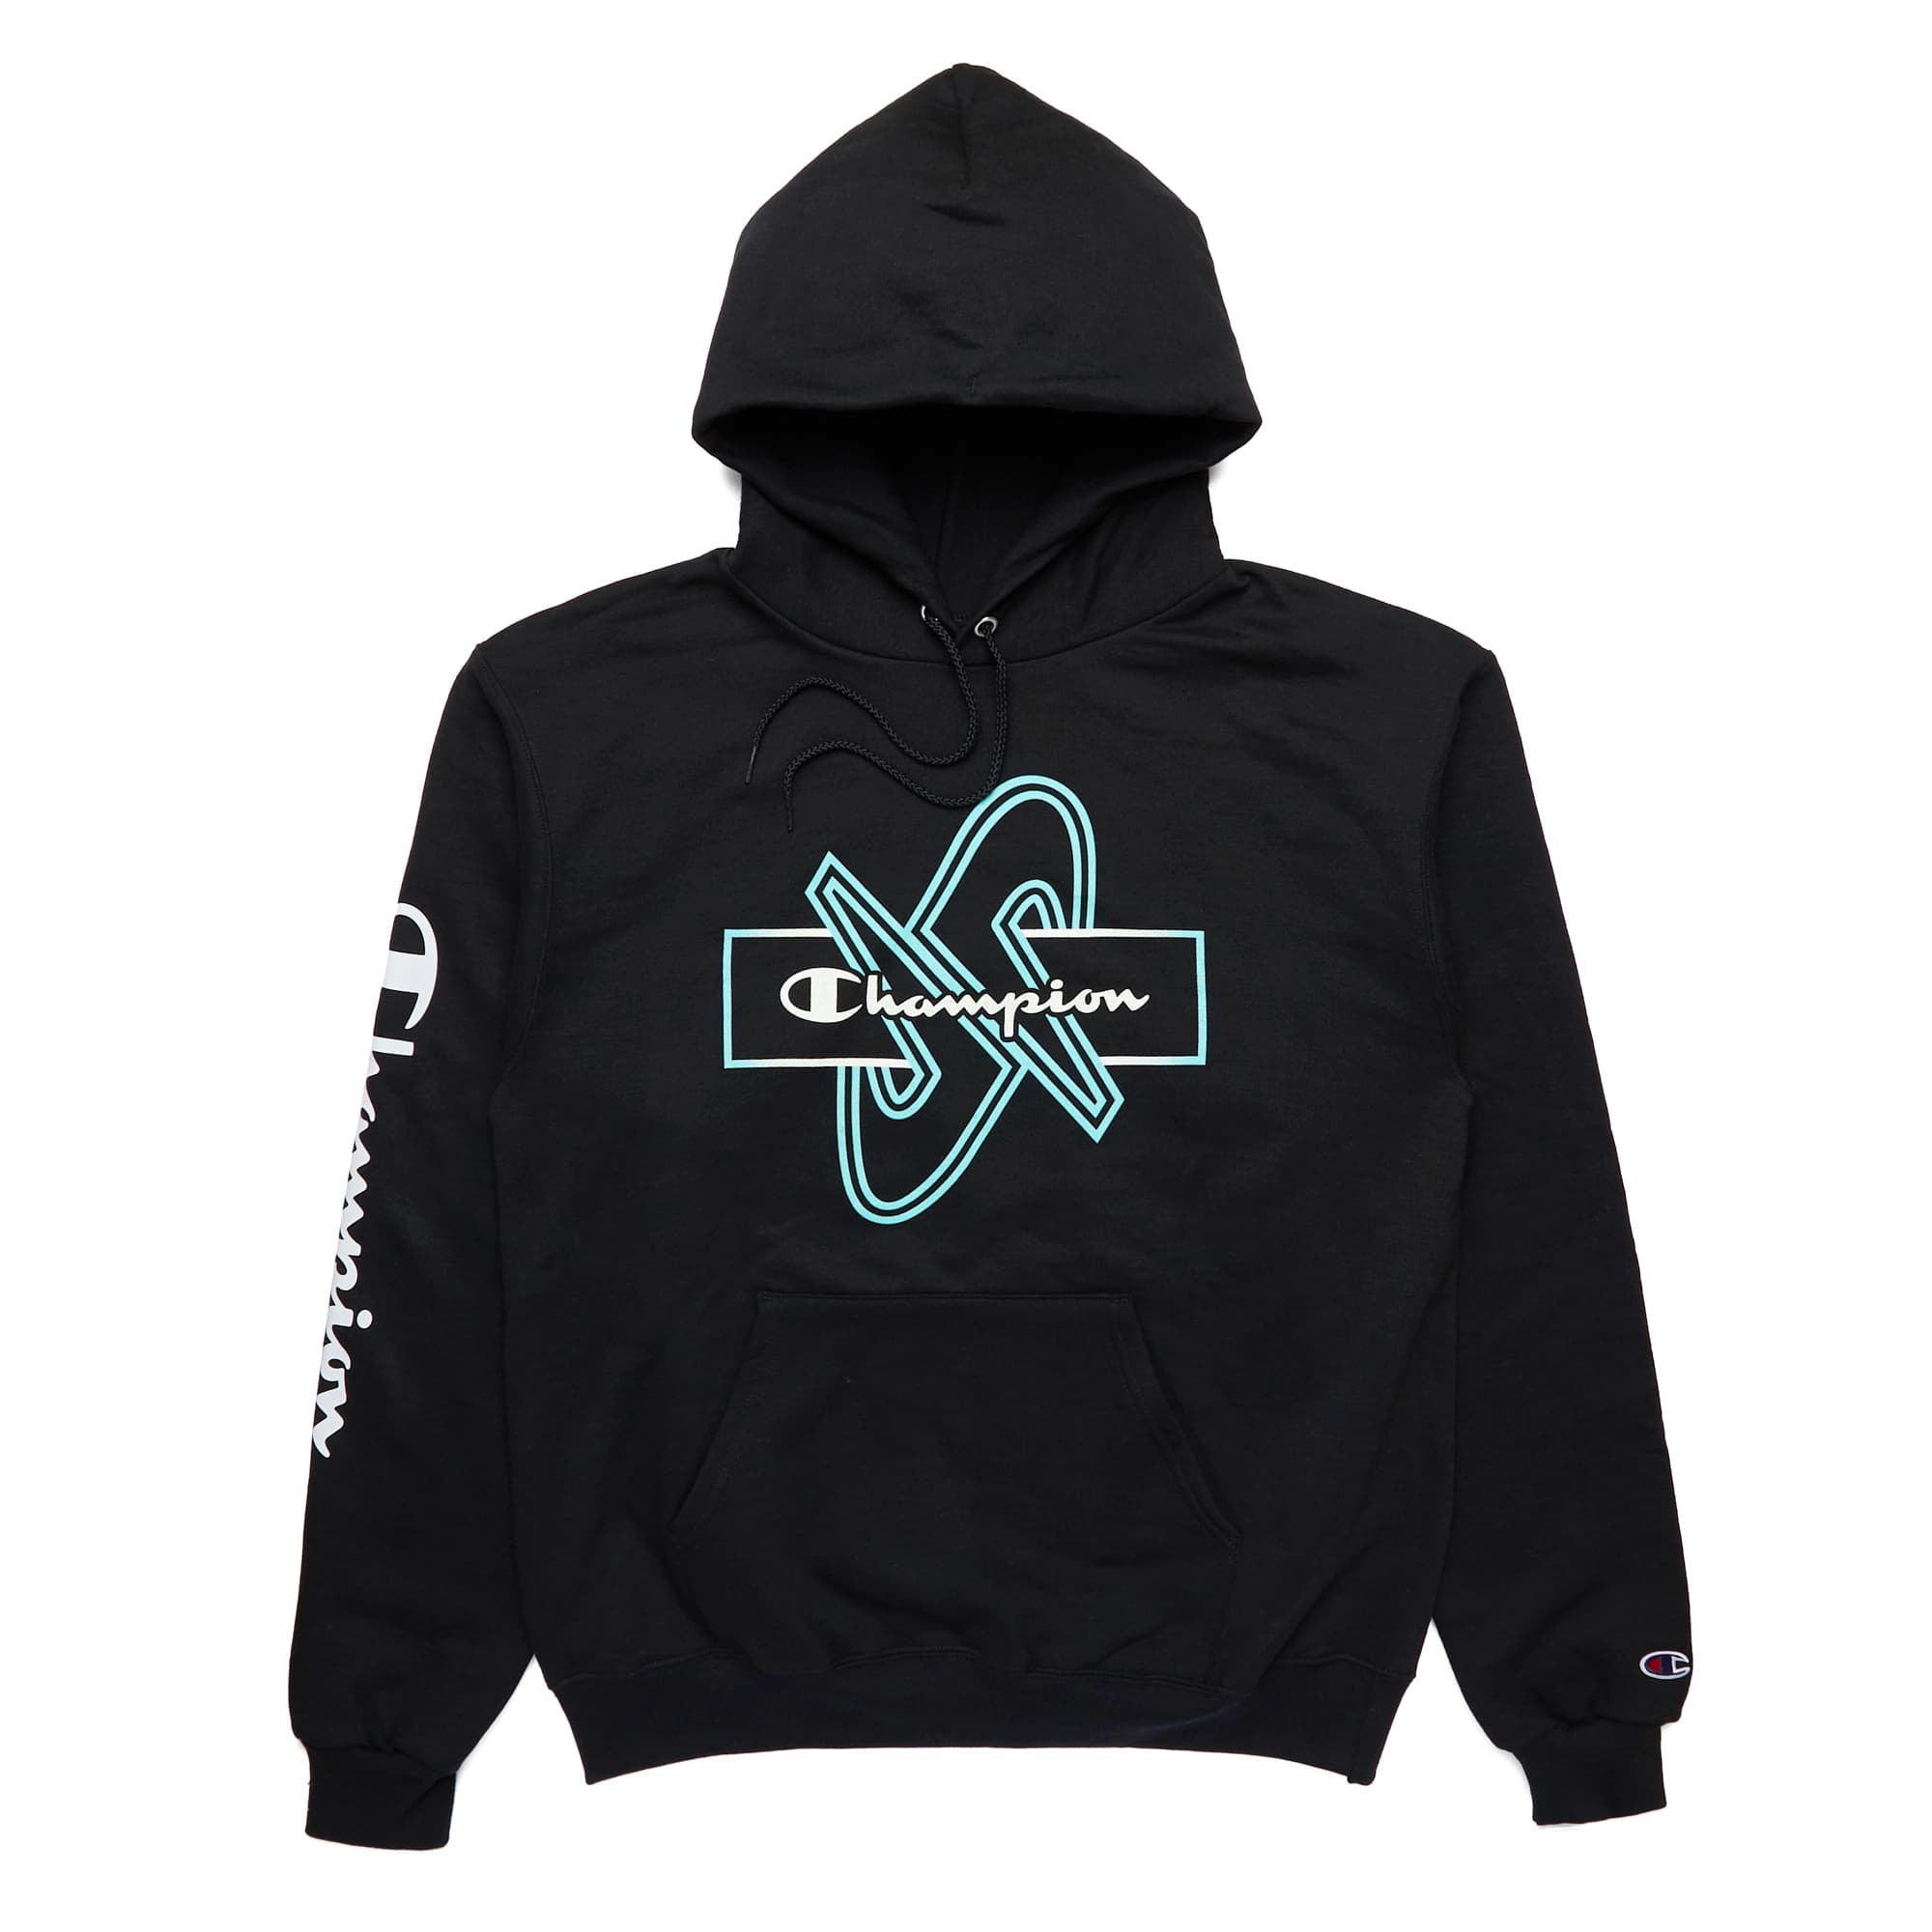 Official Dude Perfect x Champion Collaboration Hoodie 2.0 - LIMITED EDITION